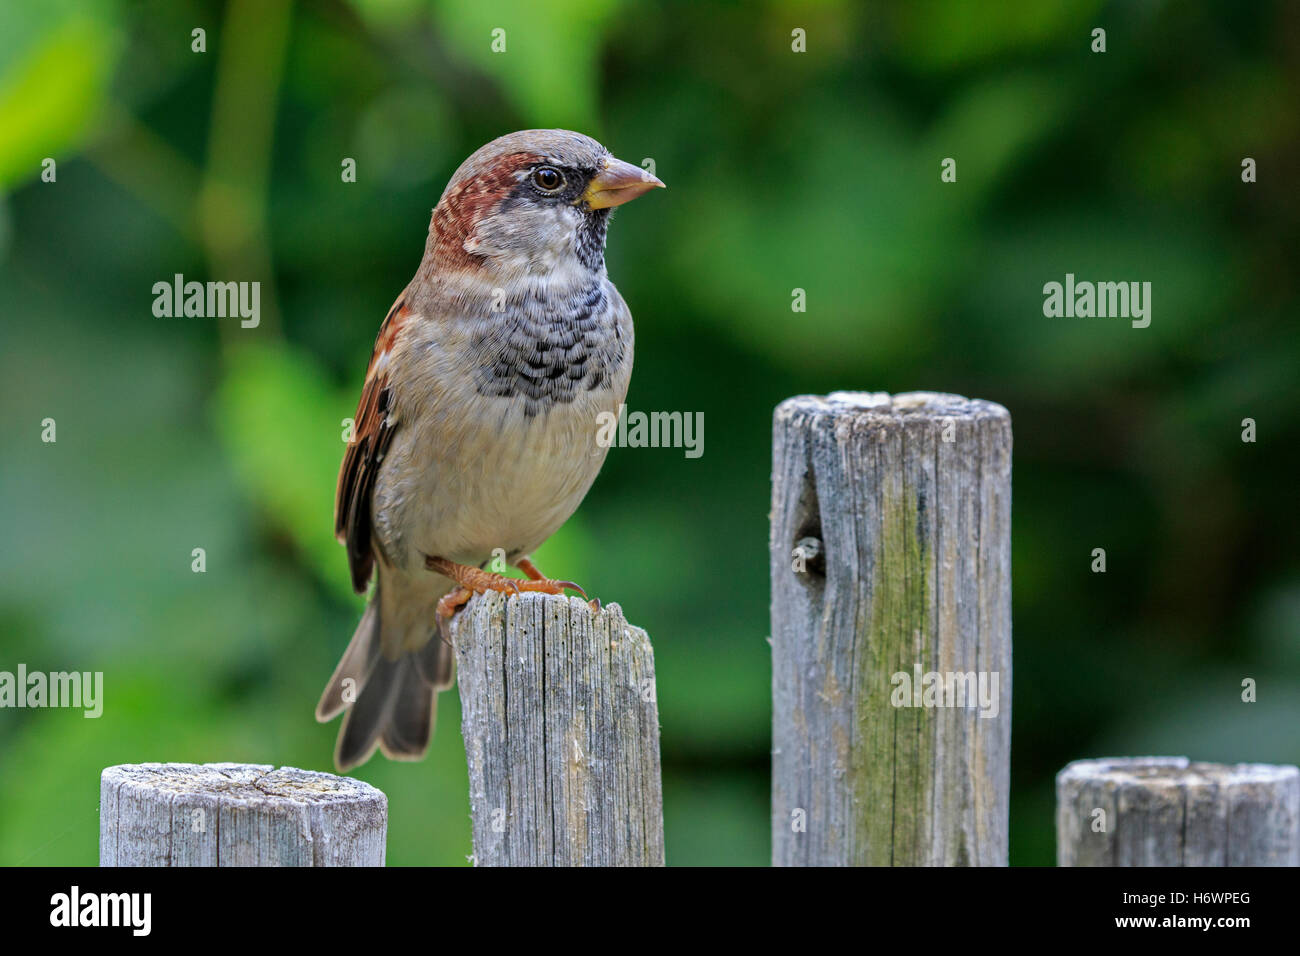 House sparrow (Passer domesticus) on fence post. - Stock Image